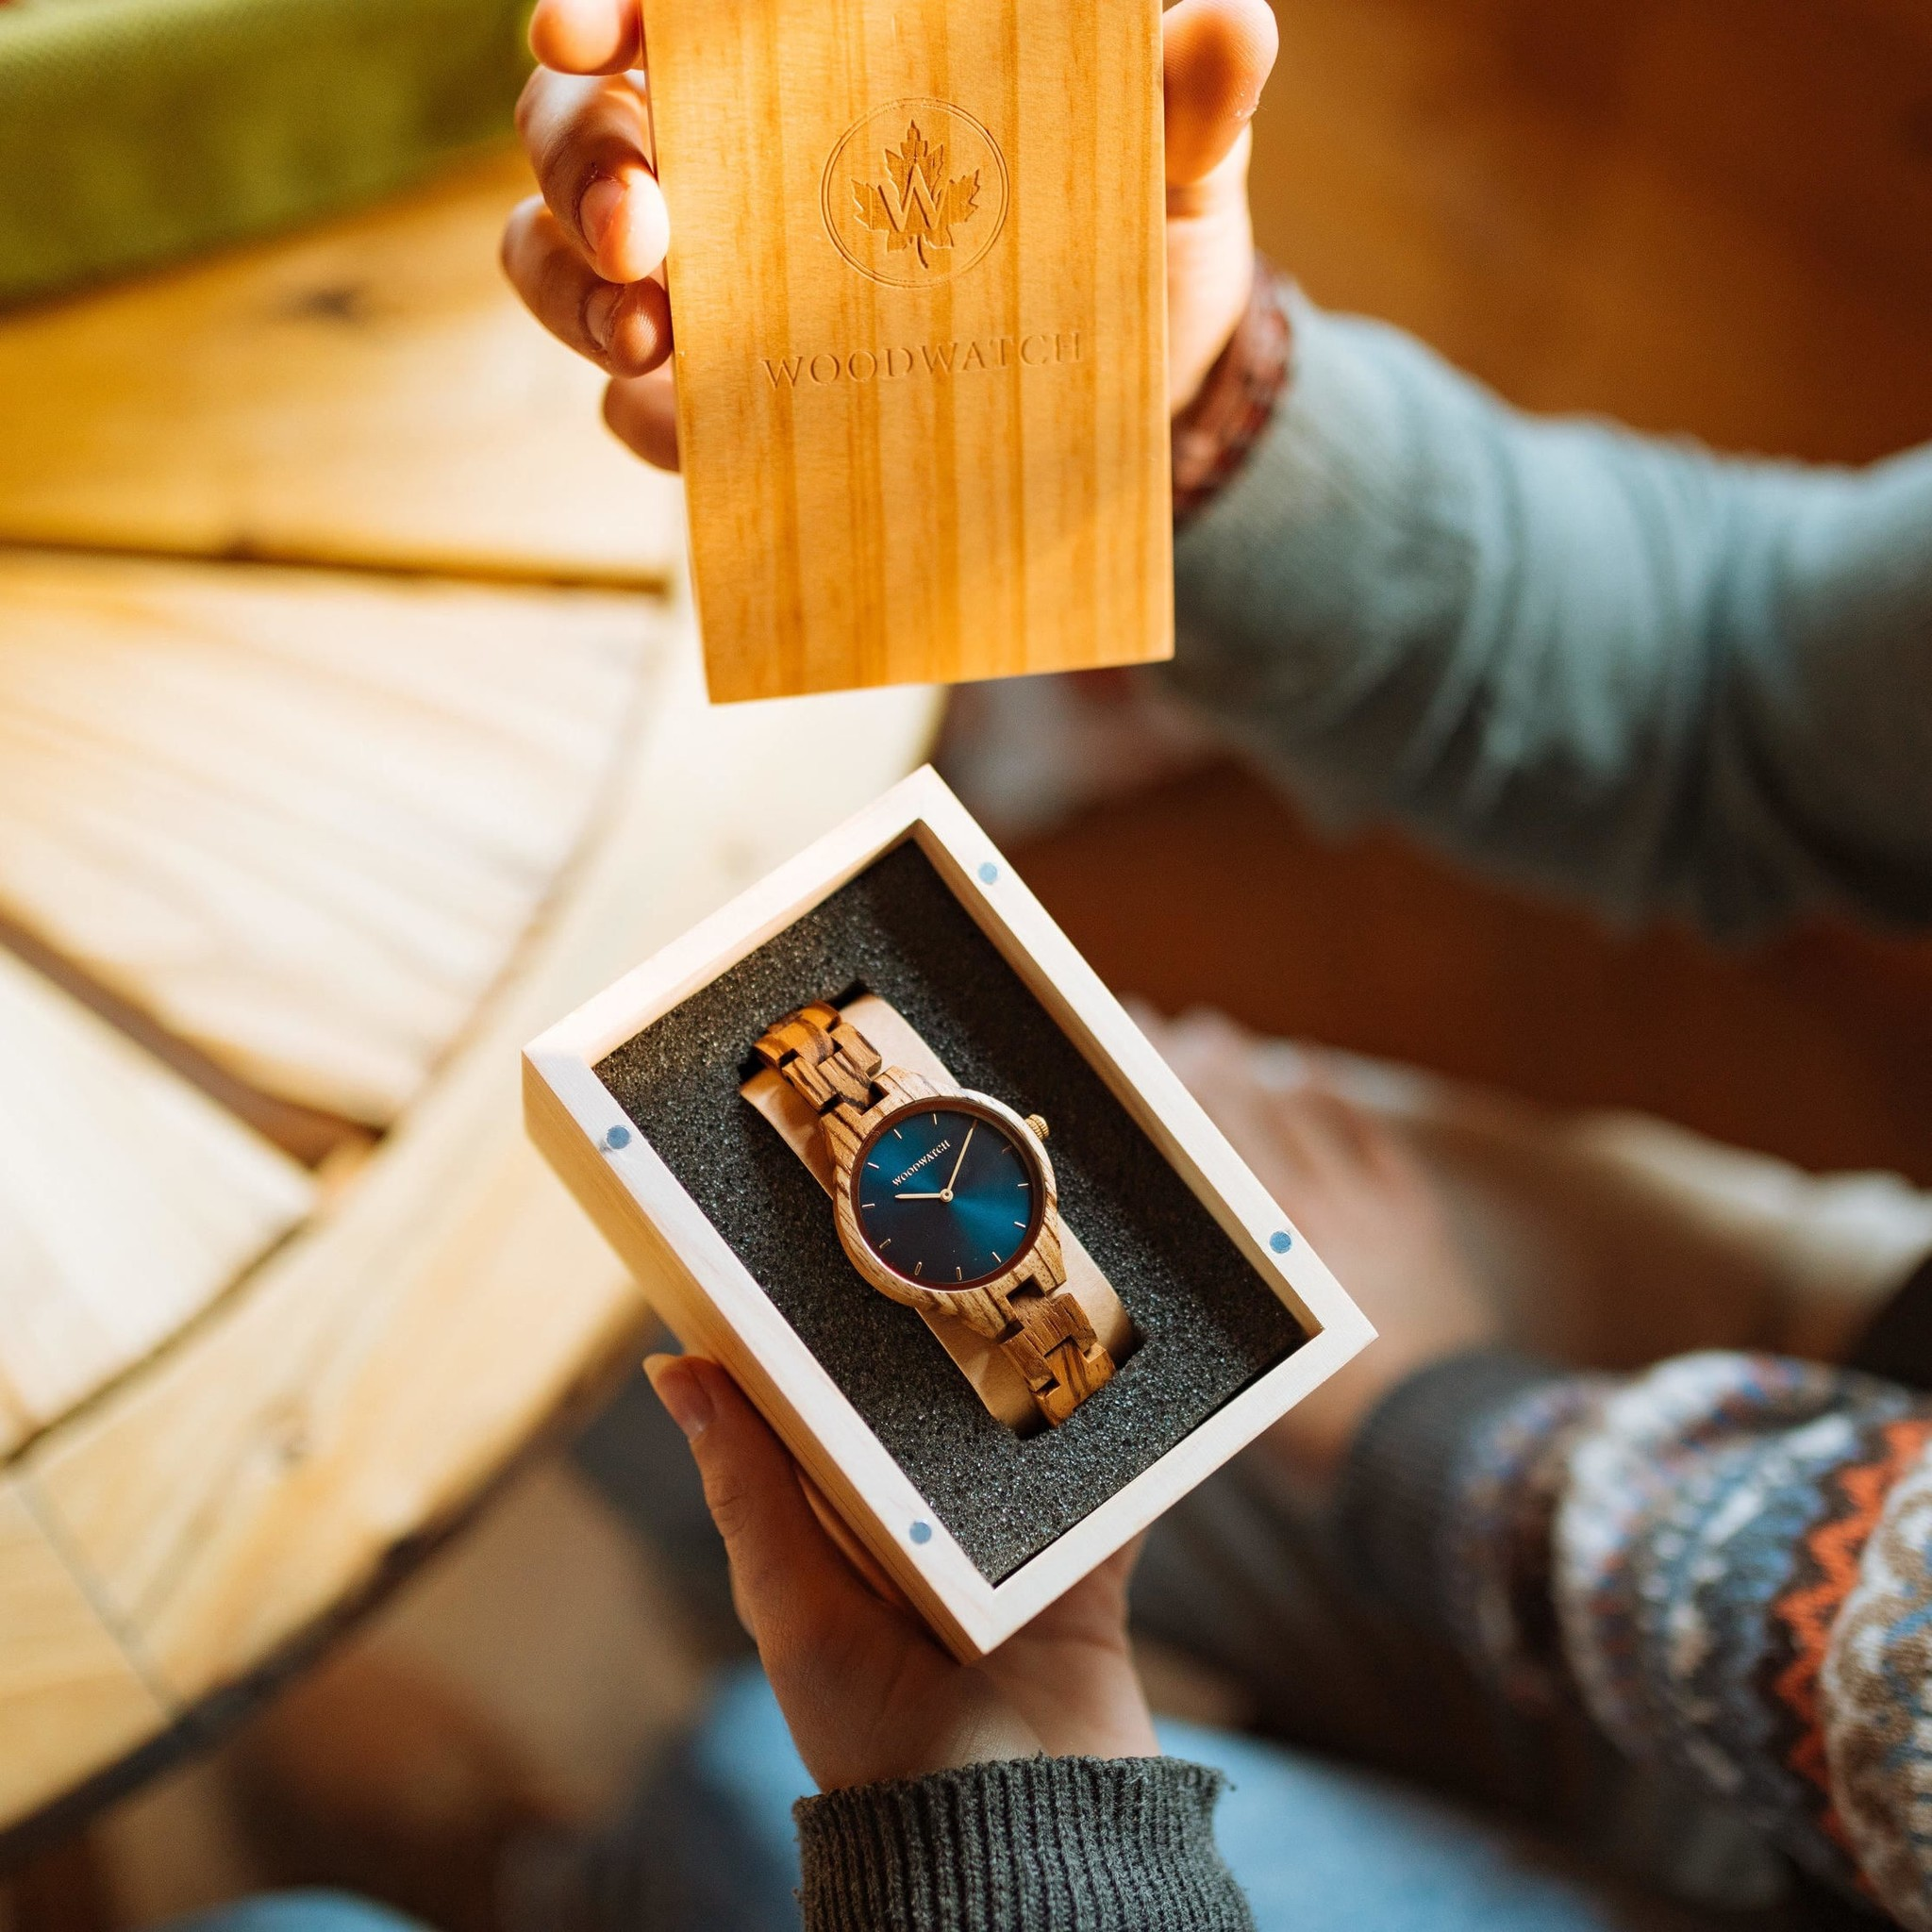 The AURORA Collection breaths the fresh air of Scandinavian nature and the astonishing views of the sky. This light weighing watch is made of West-African Zebrawood, accompanied by a blue stainless-steel dial with golden details.<br /> The watch is available w